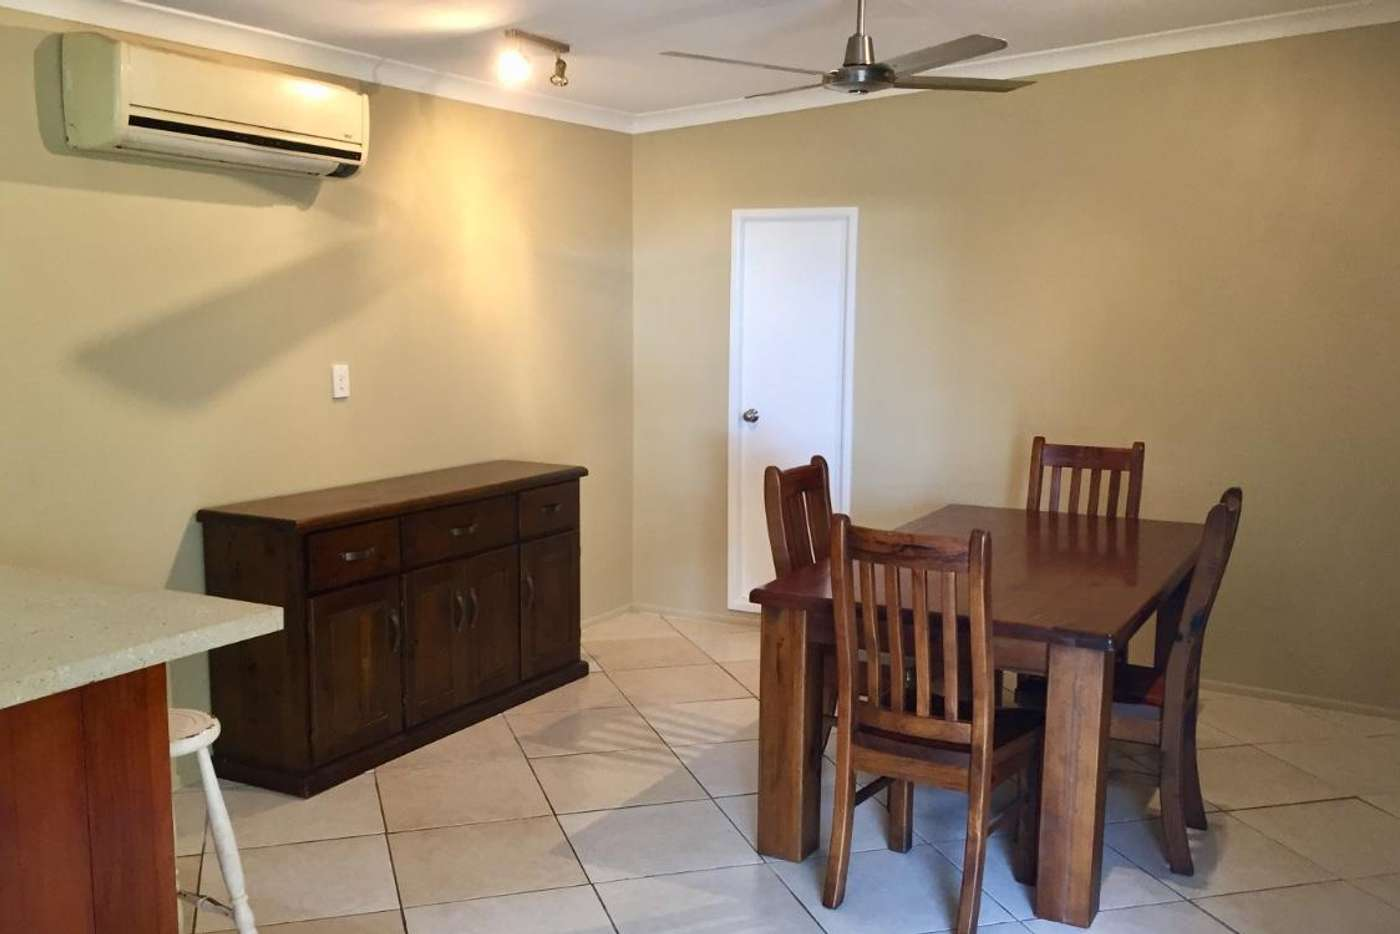 Sixth view of Homely house listing, 28 Downie Avenue, Bucasia QLD 4750